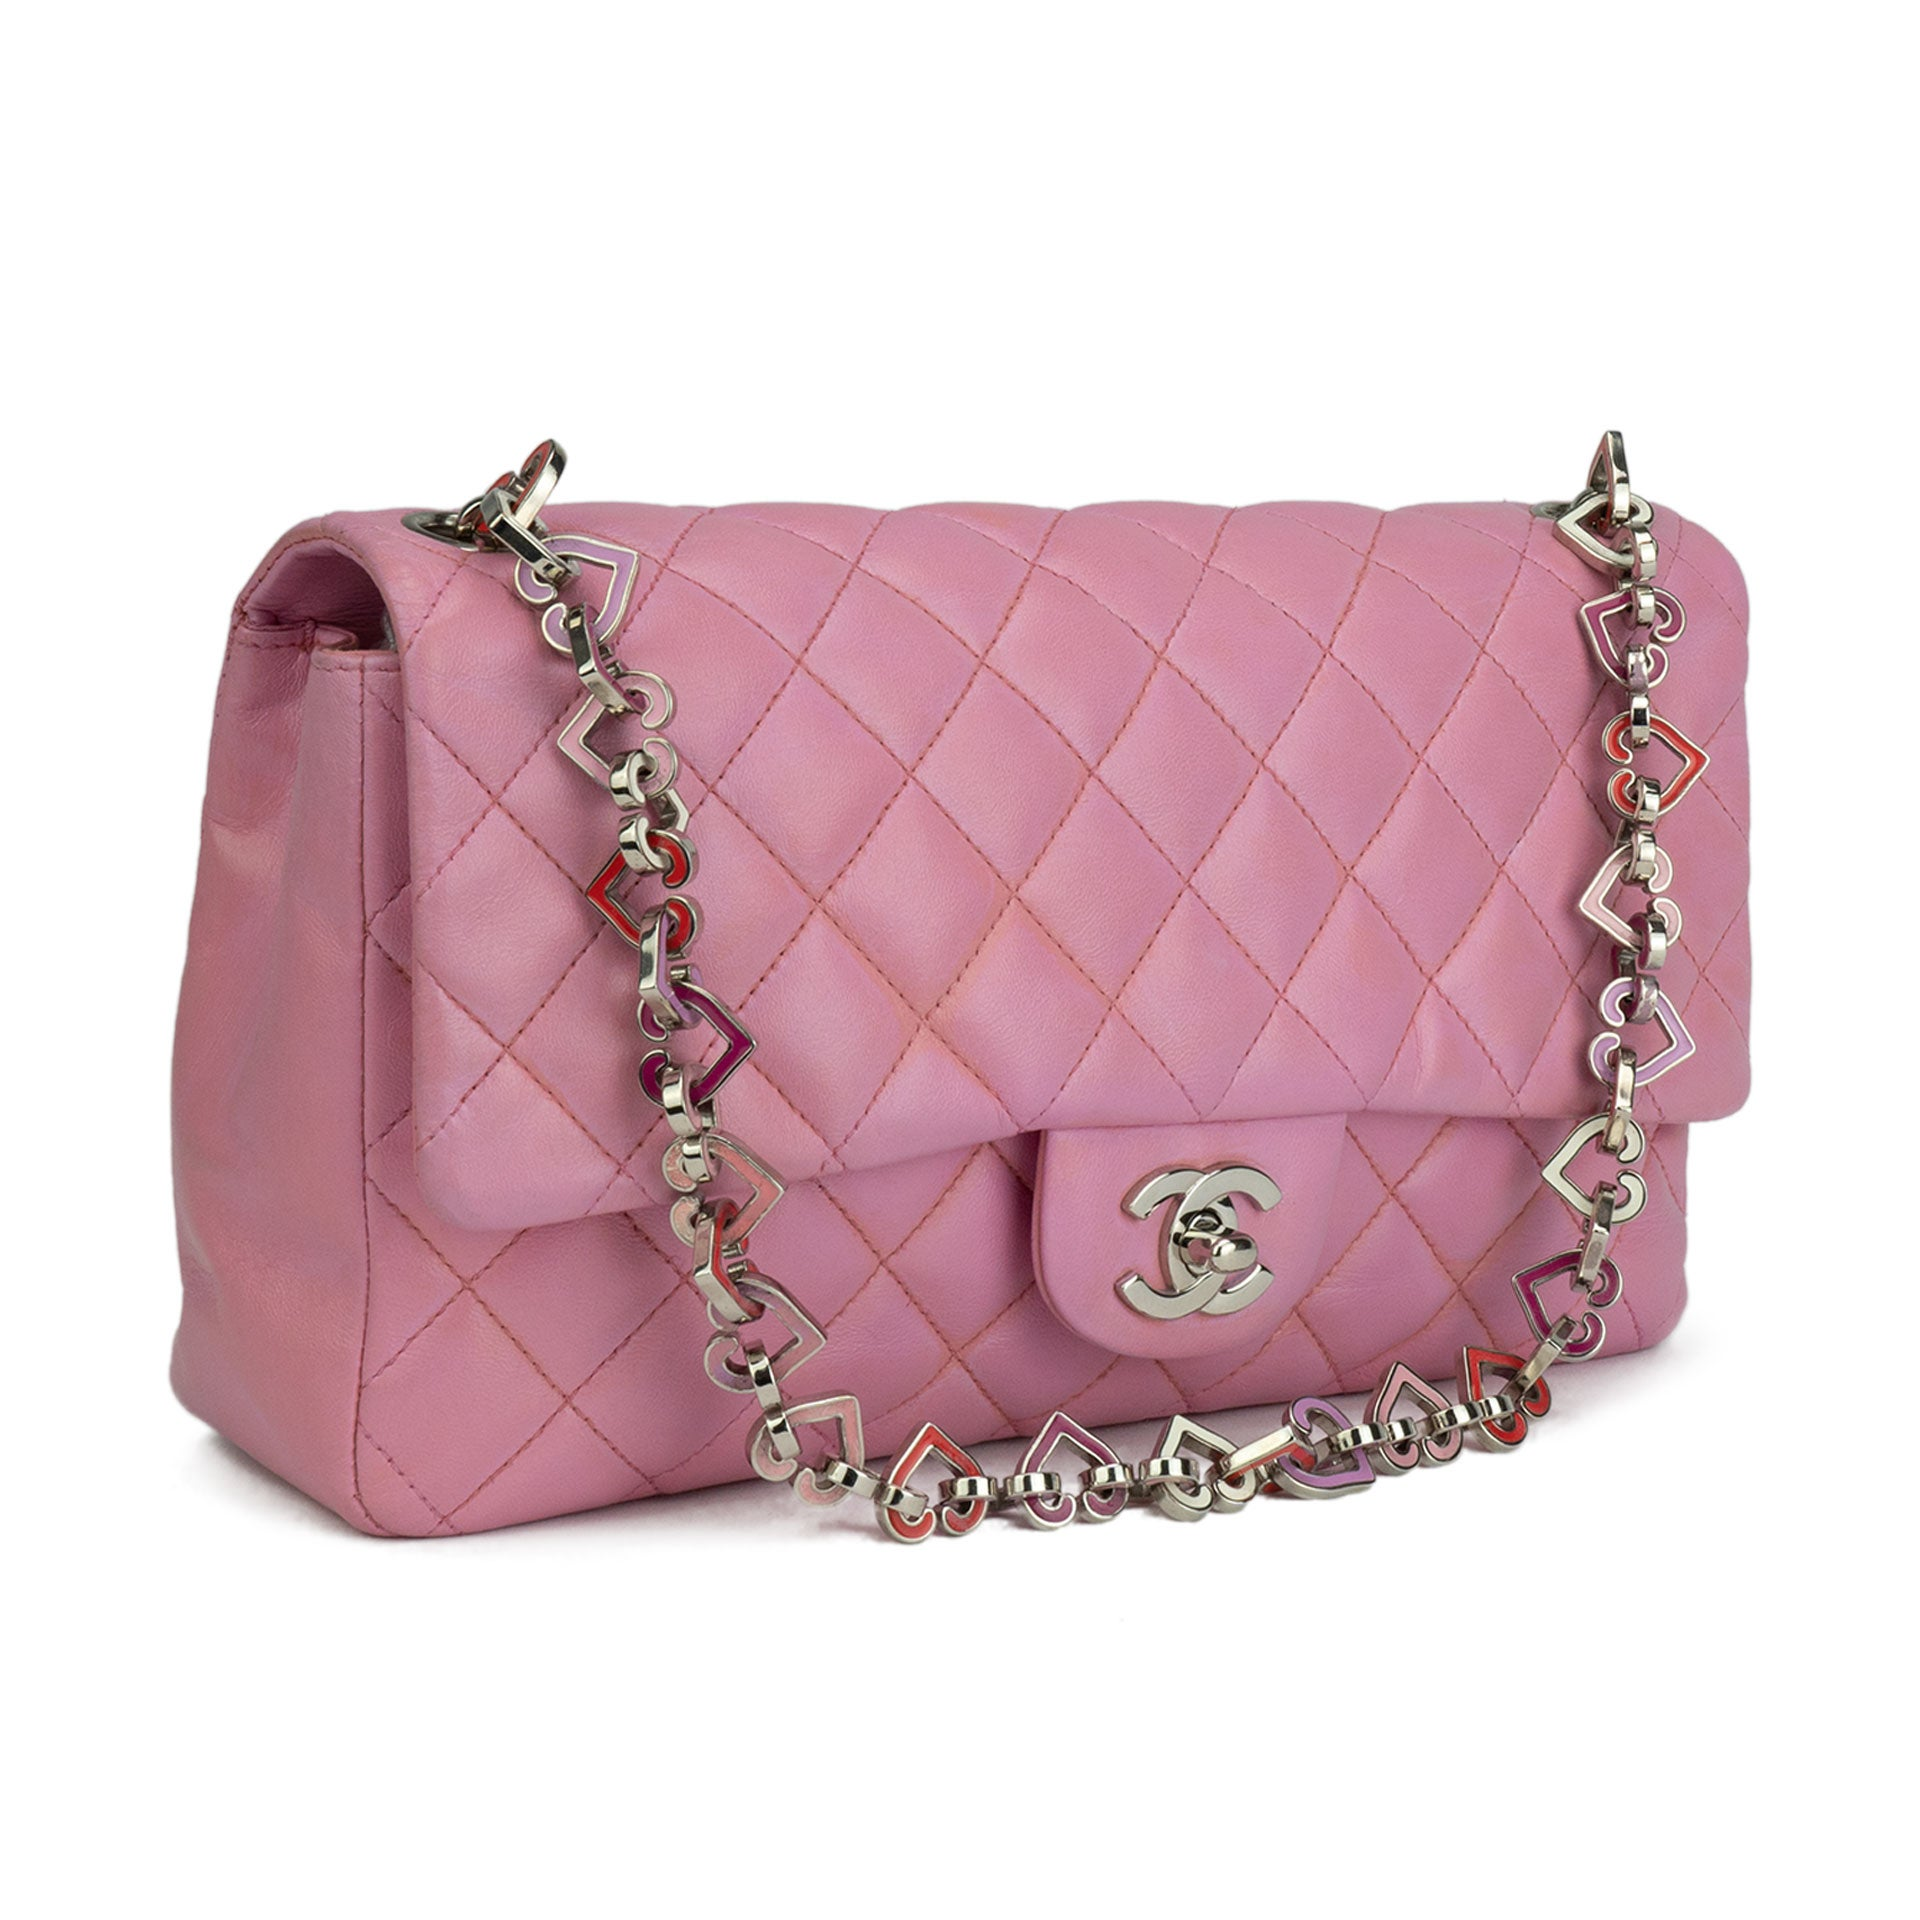 1afc45cb12d8 Chanel Limited Edition Valentines Rare Heart Charm Pink Classic Flap at  1stdibs